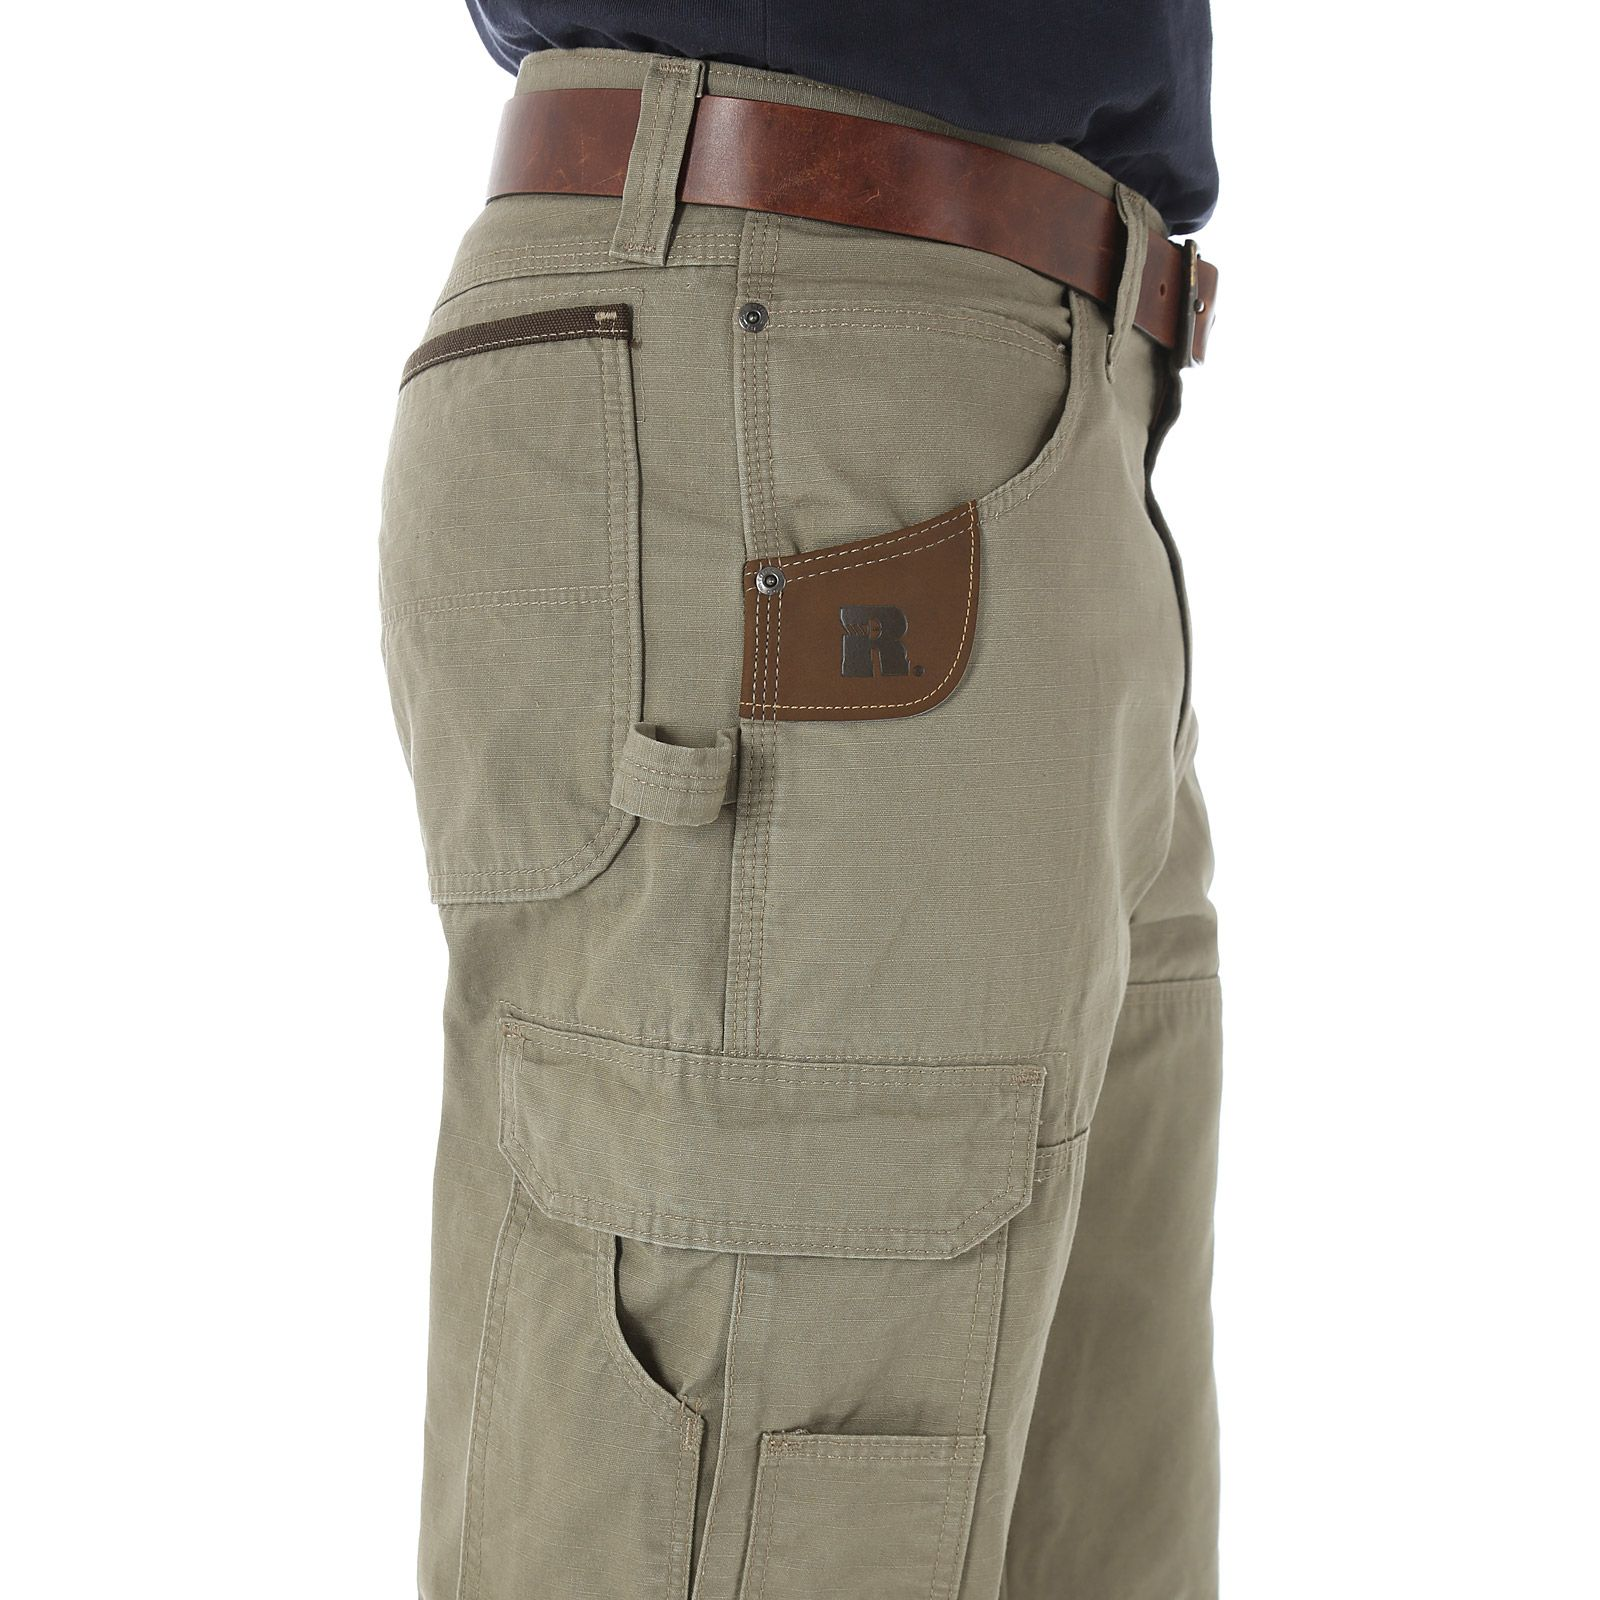 3318cd37b3248d Ripstop Ranger Pant. Side cargo pockets with flaps. Reinforced knees. Right  side hammer loop. Leather tape measure reinforcement. Big & Tall.